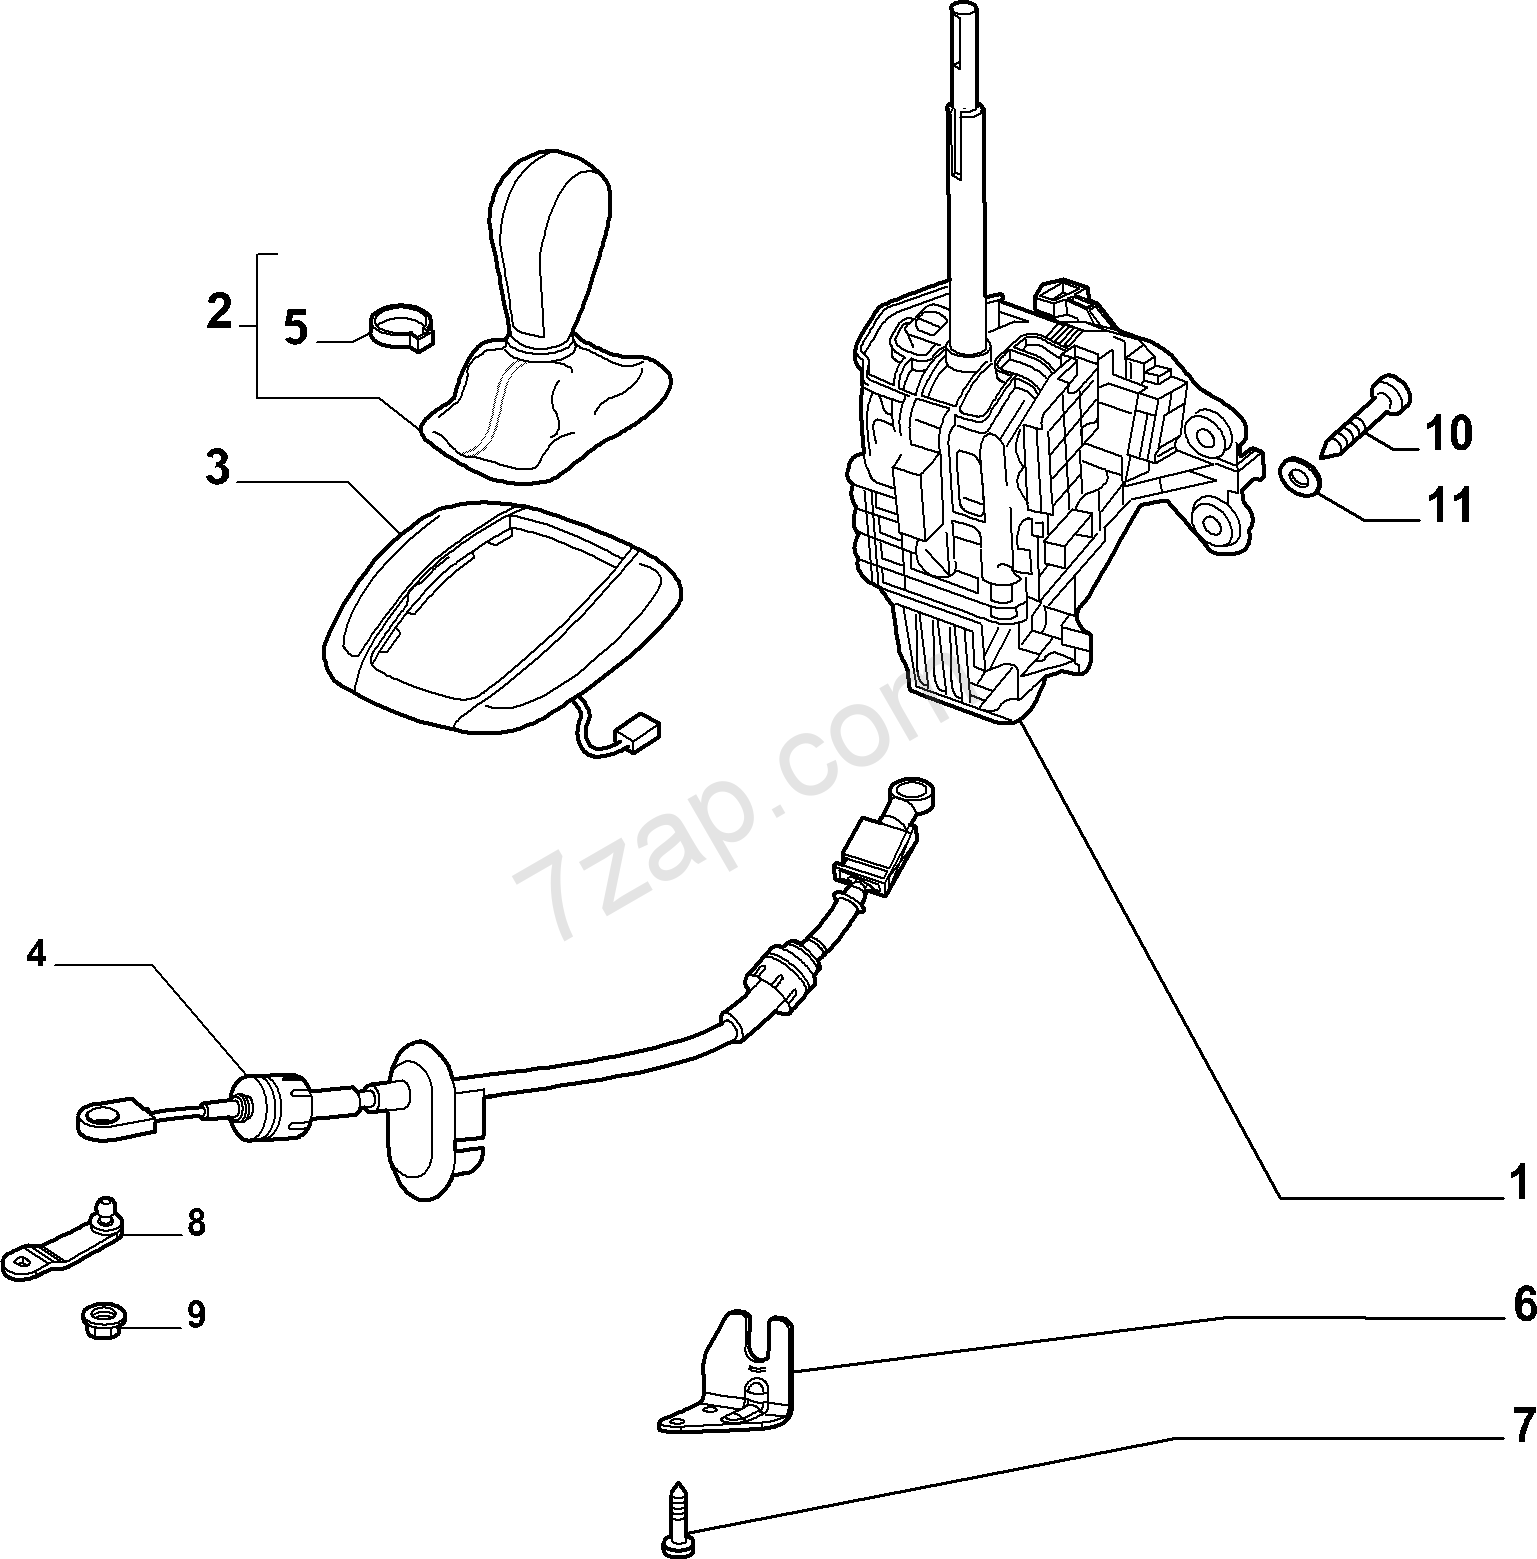 Fiat Croma Wiring Diagram Trusted Schematics Start Transmission Outer Controls 2005 2010 Cm Hoist